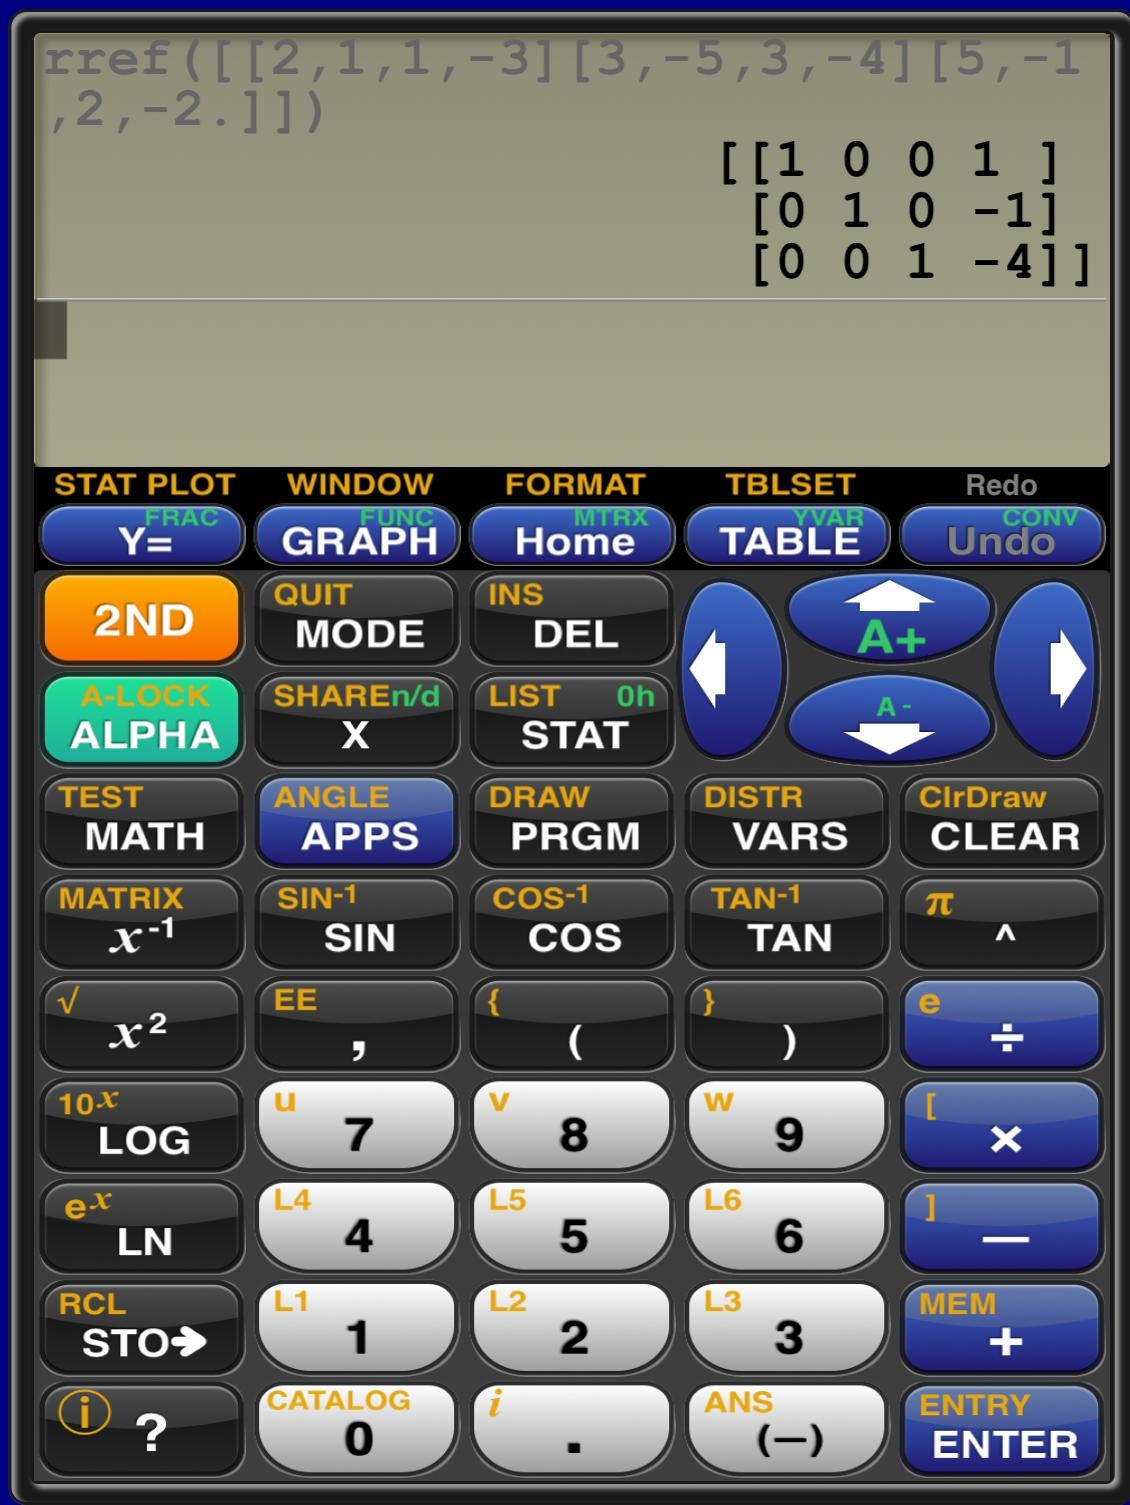 Solve the system of equations by finding the reduced row-echelon form of the augmented matrix ...